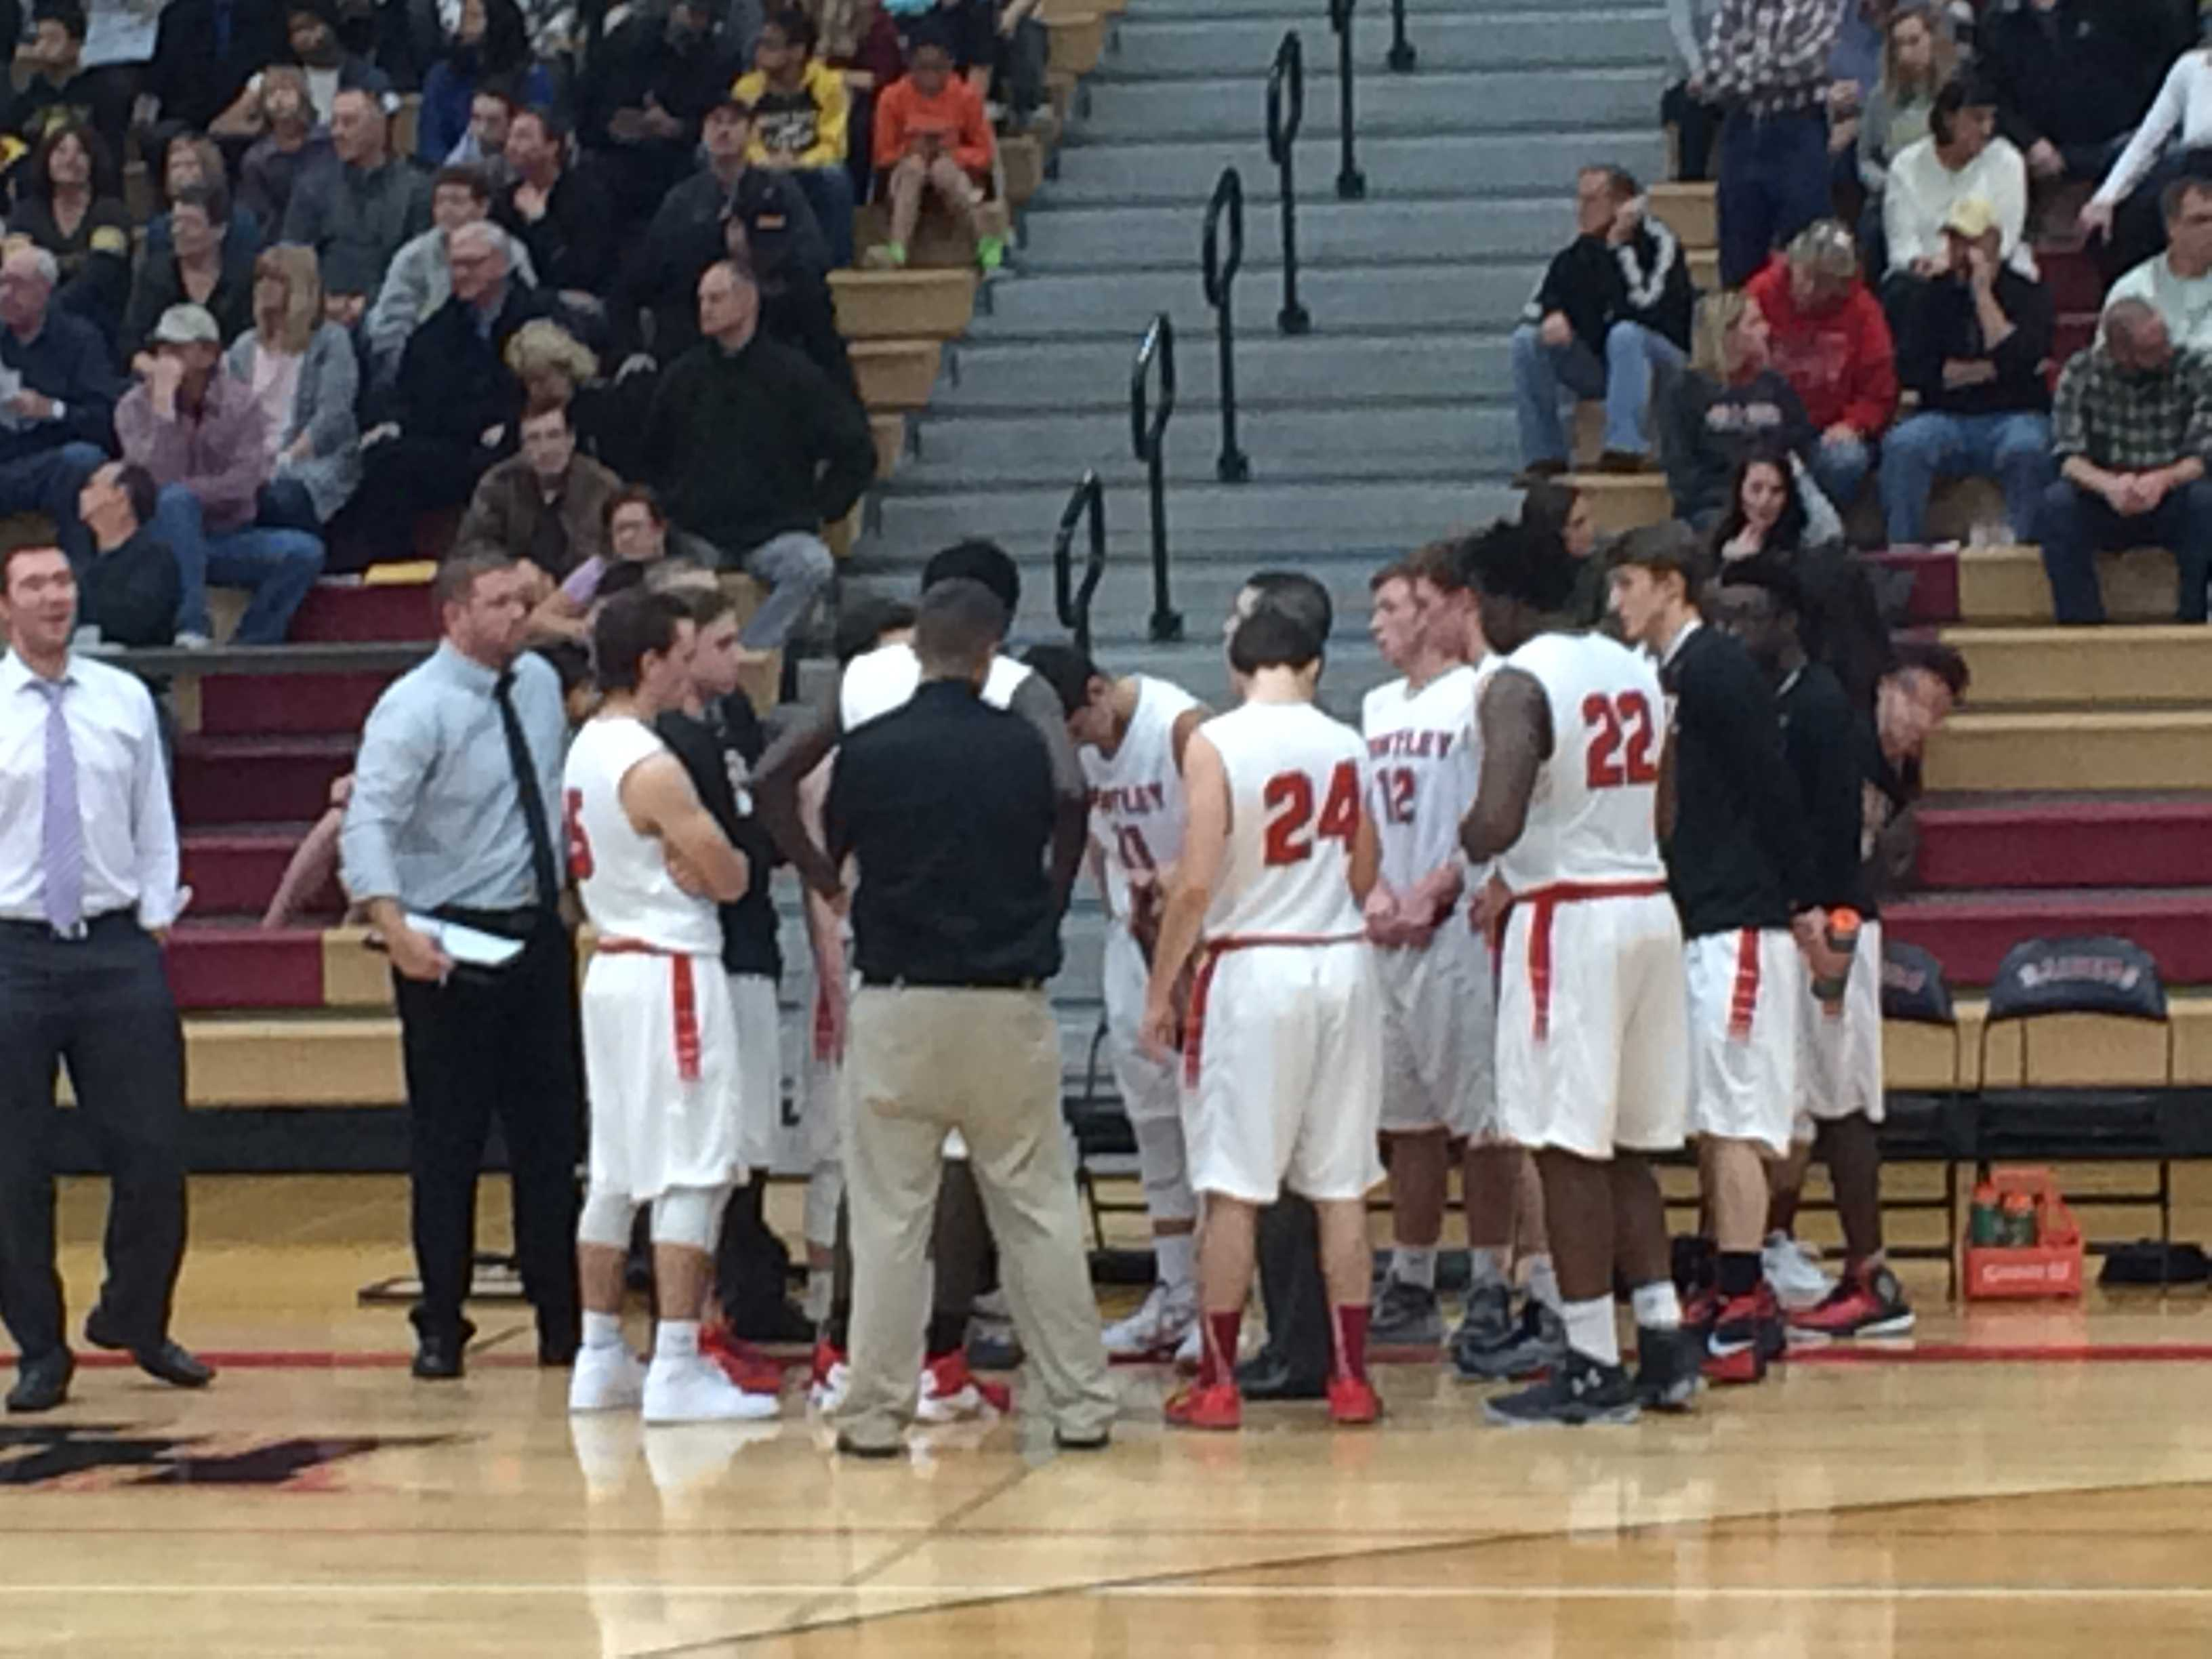 The Red Raiders huddle during their game against Jacobs.